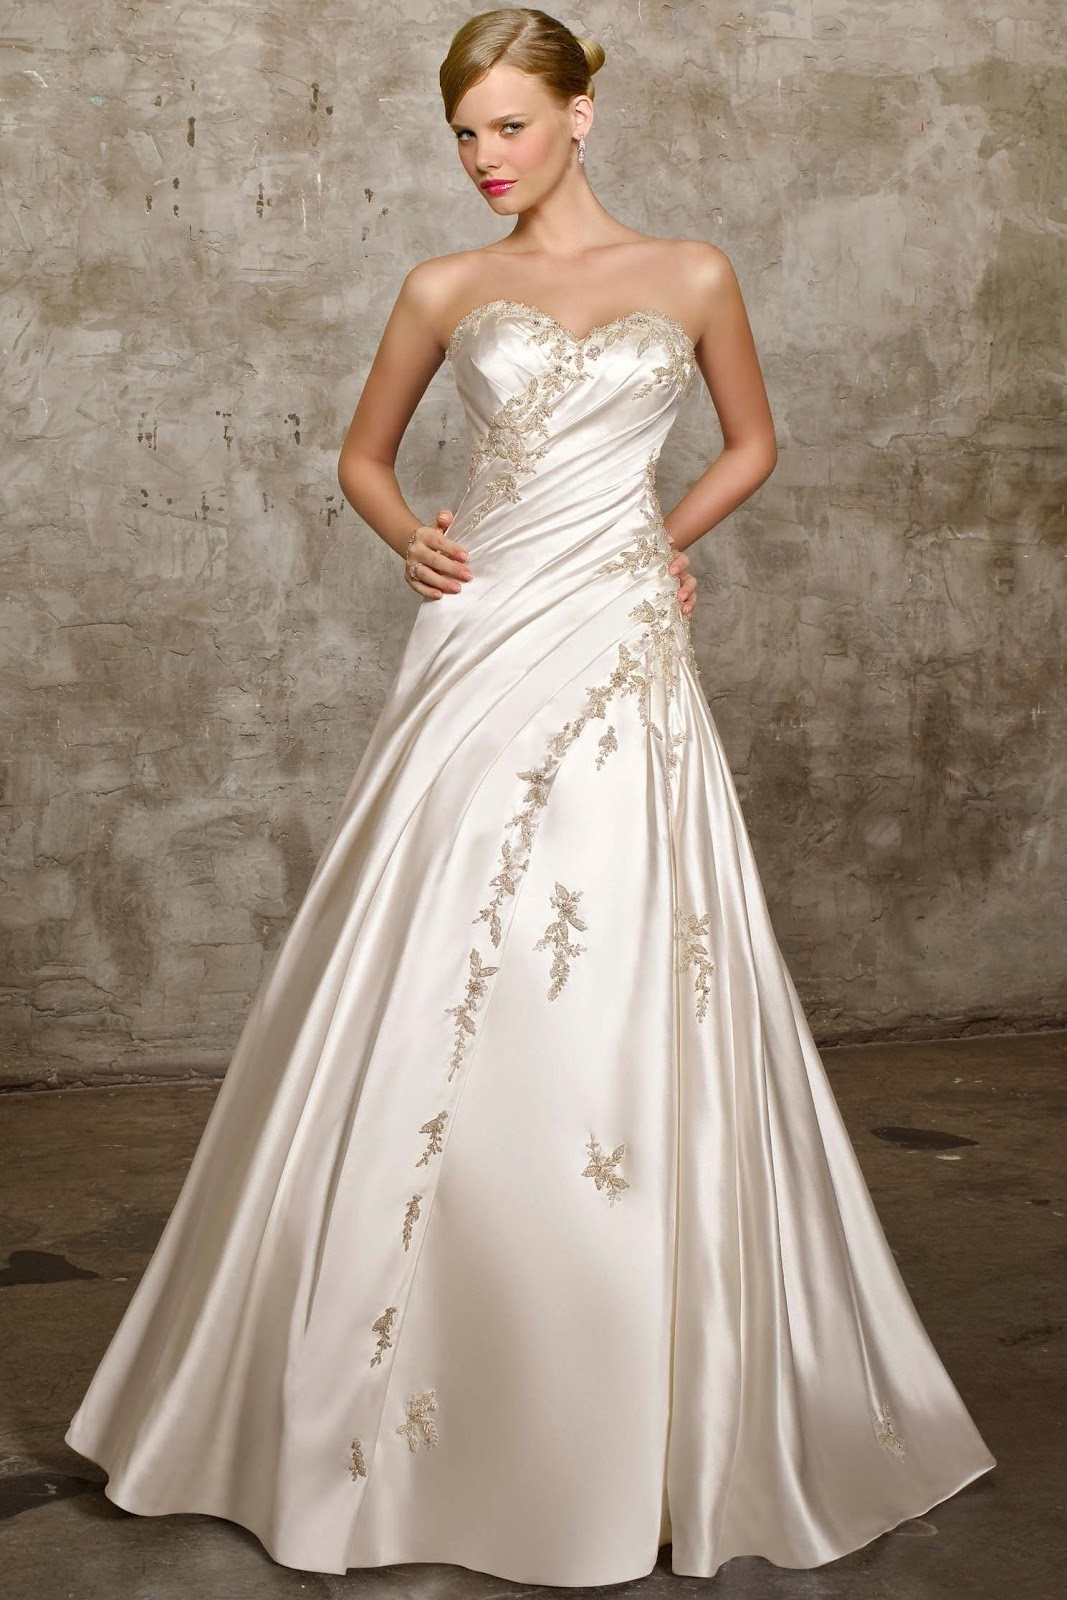 A-Line 2012 Wedding Gown.